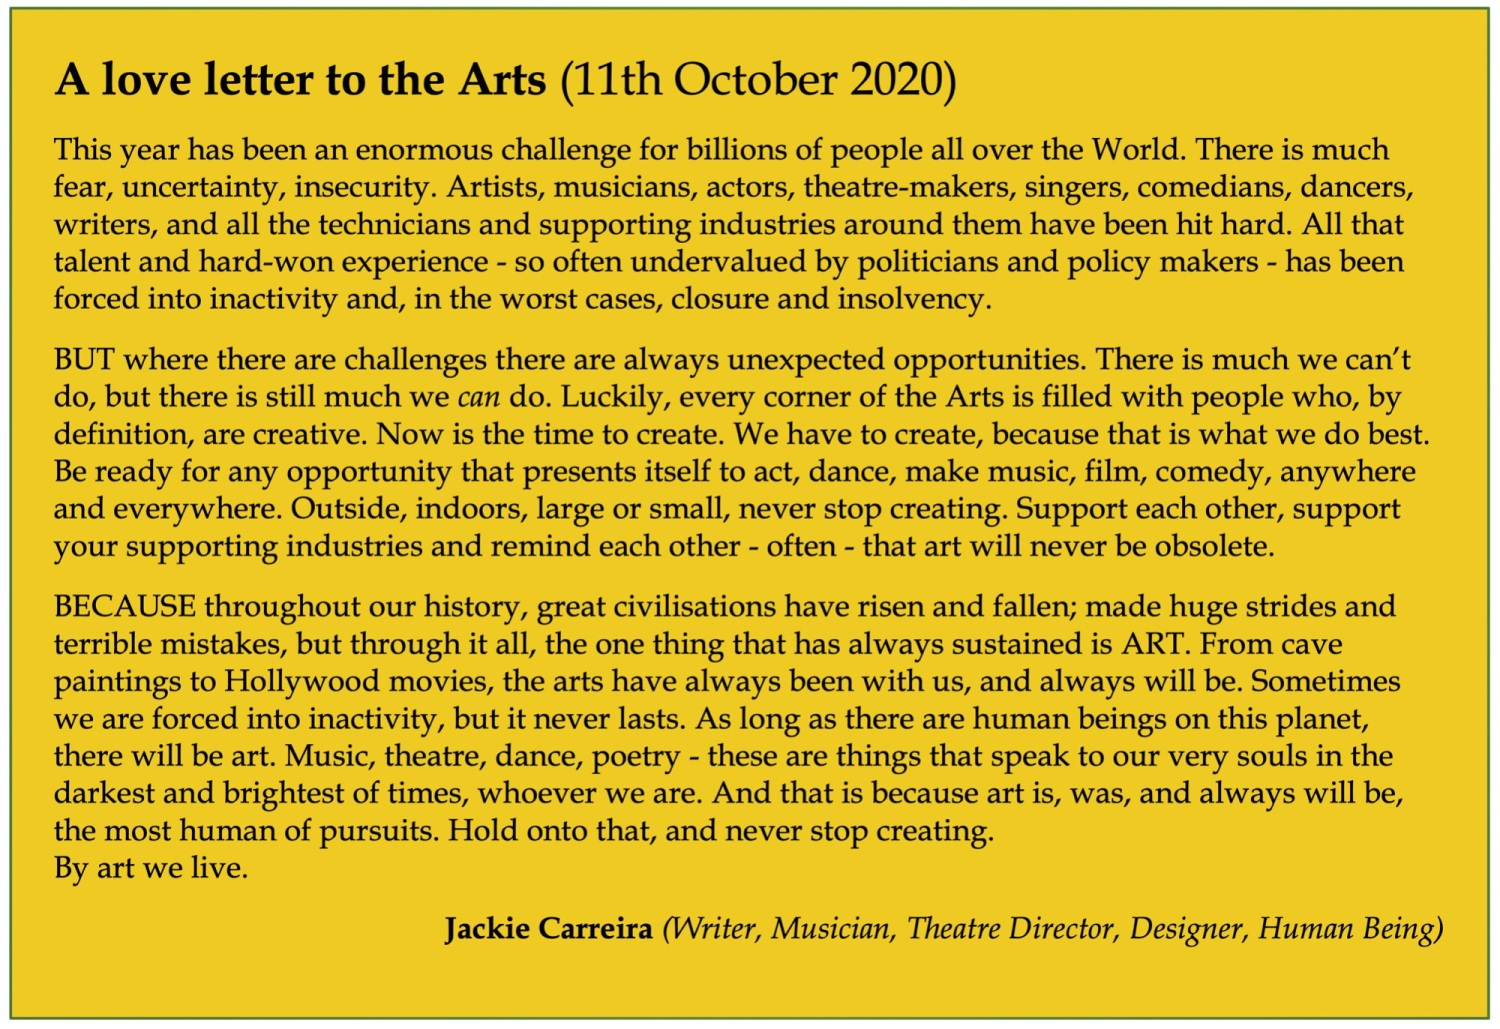 A love letter to the Arts